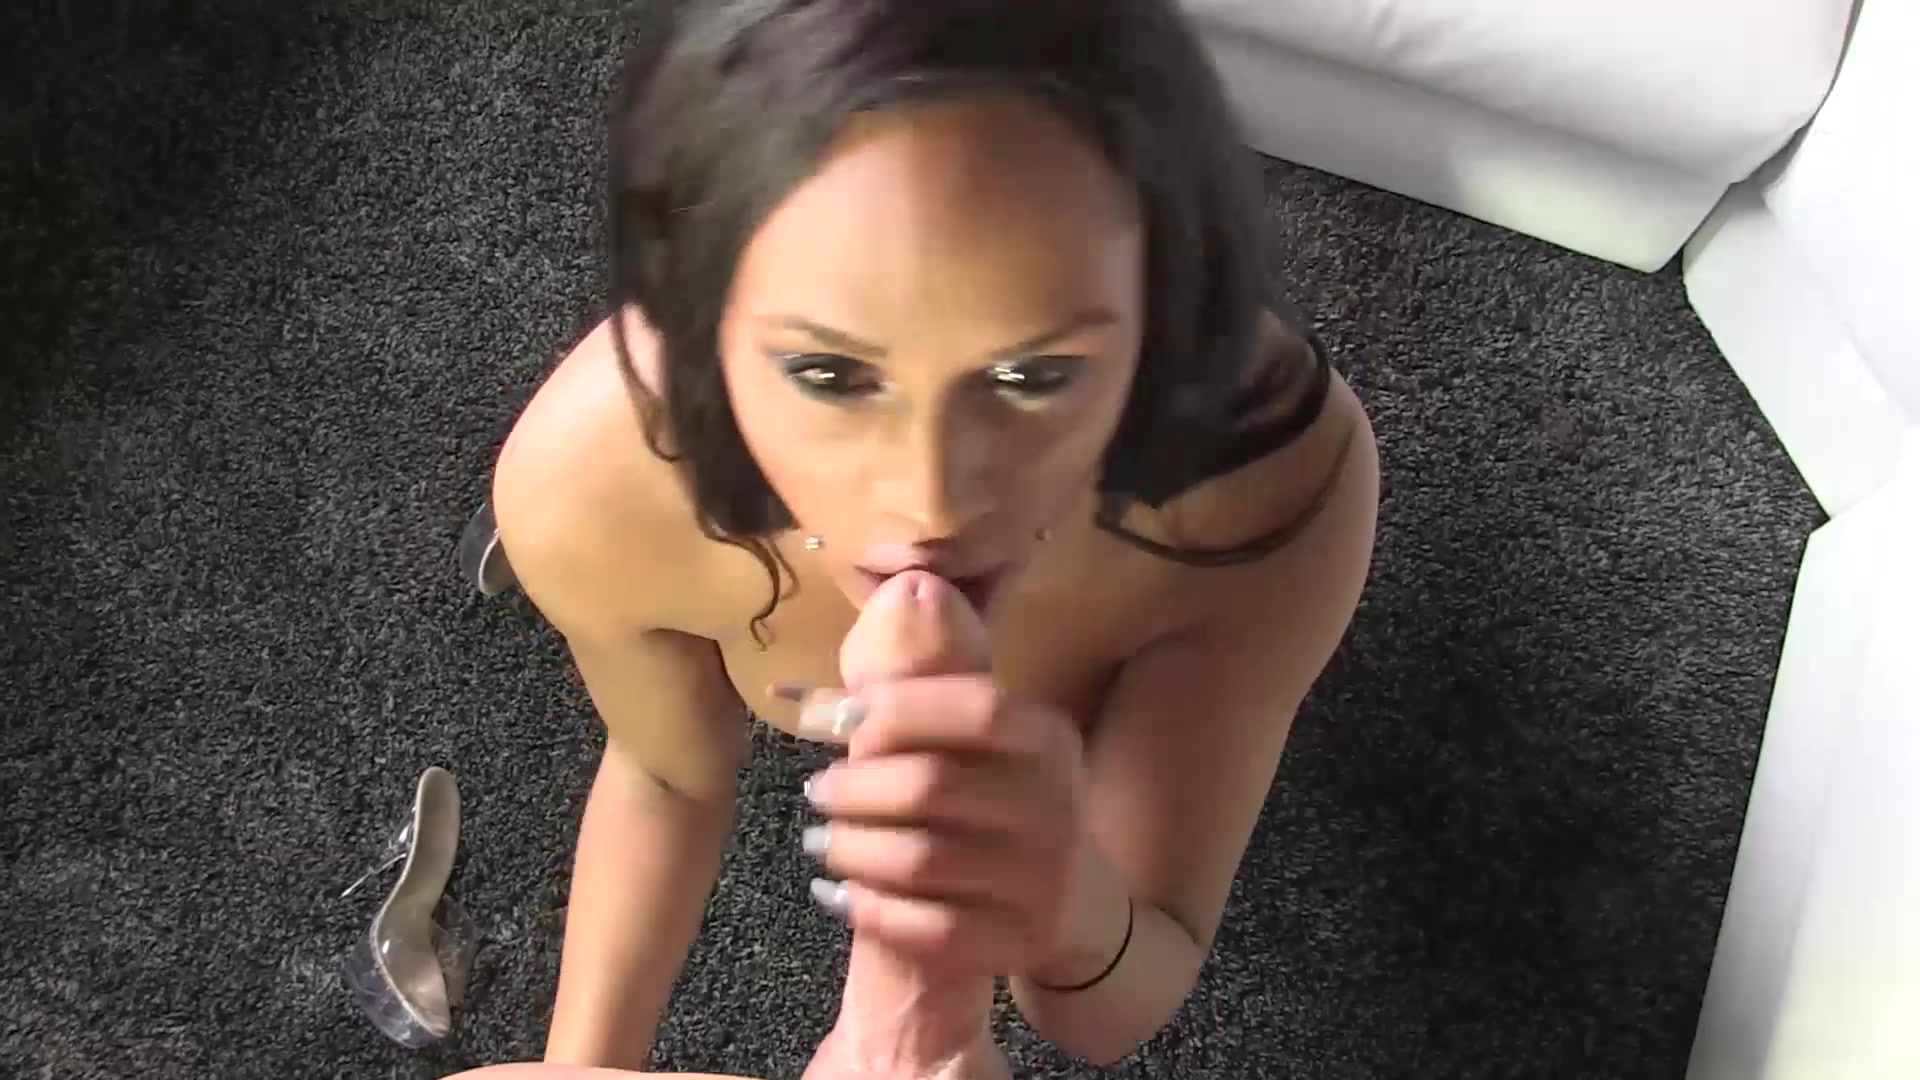 anal video shemale